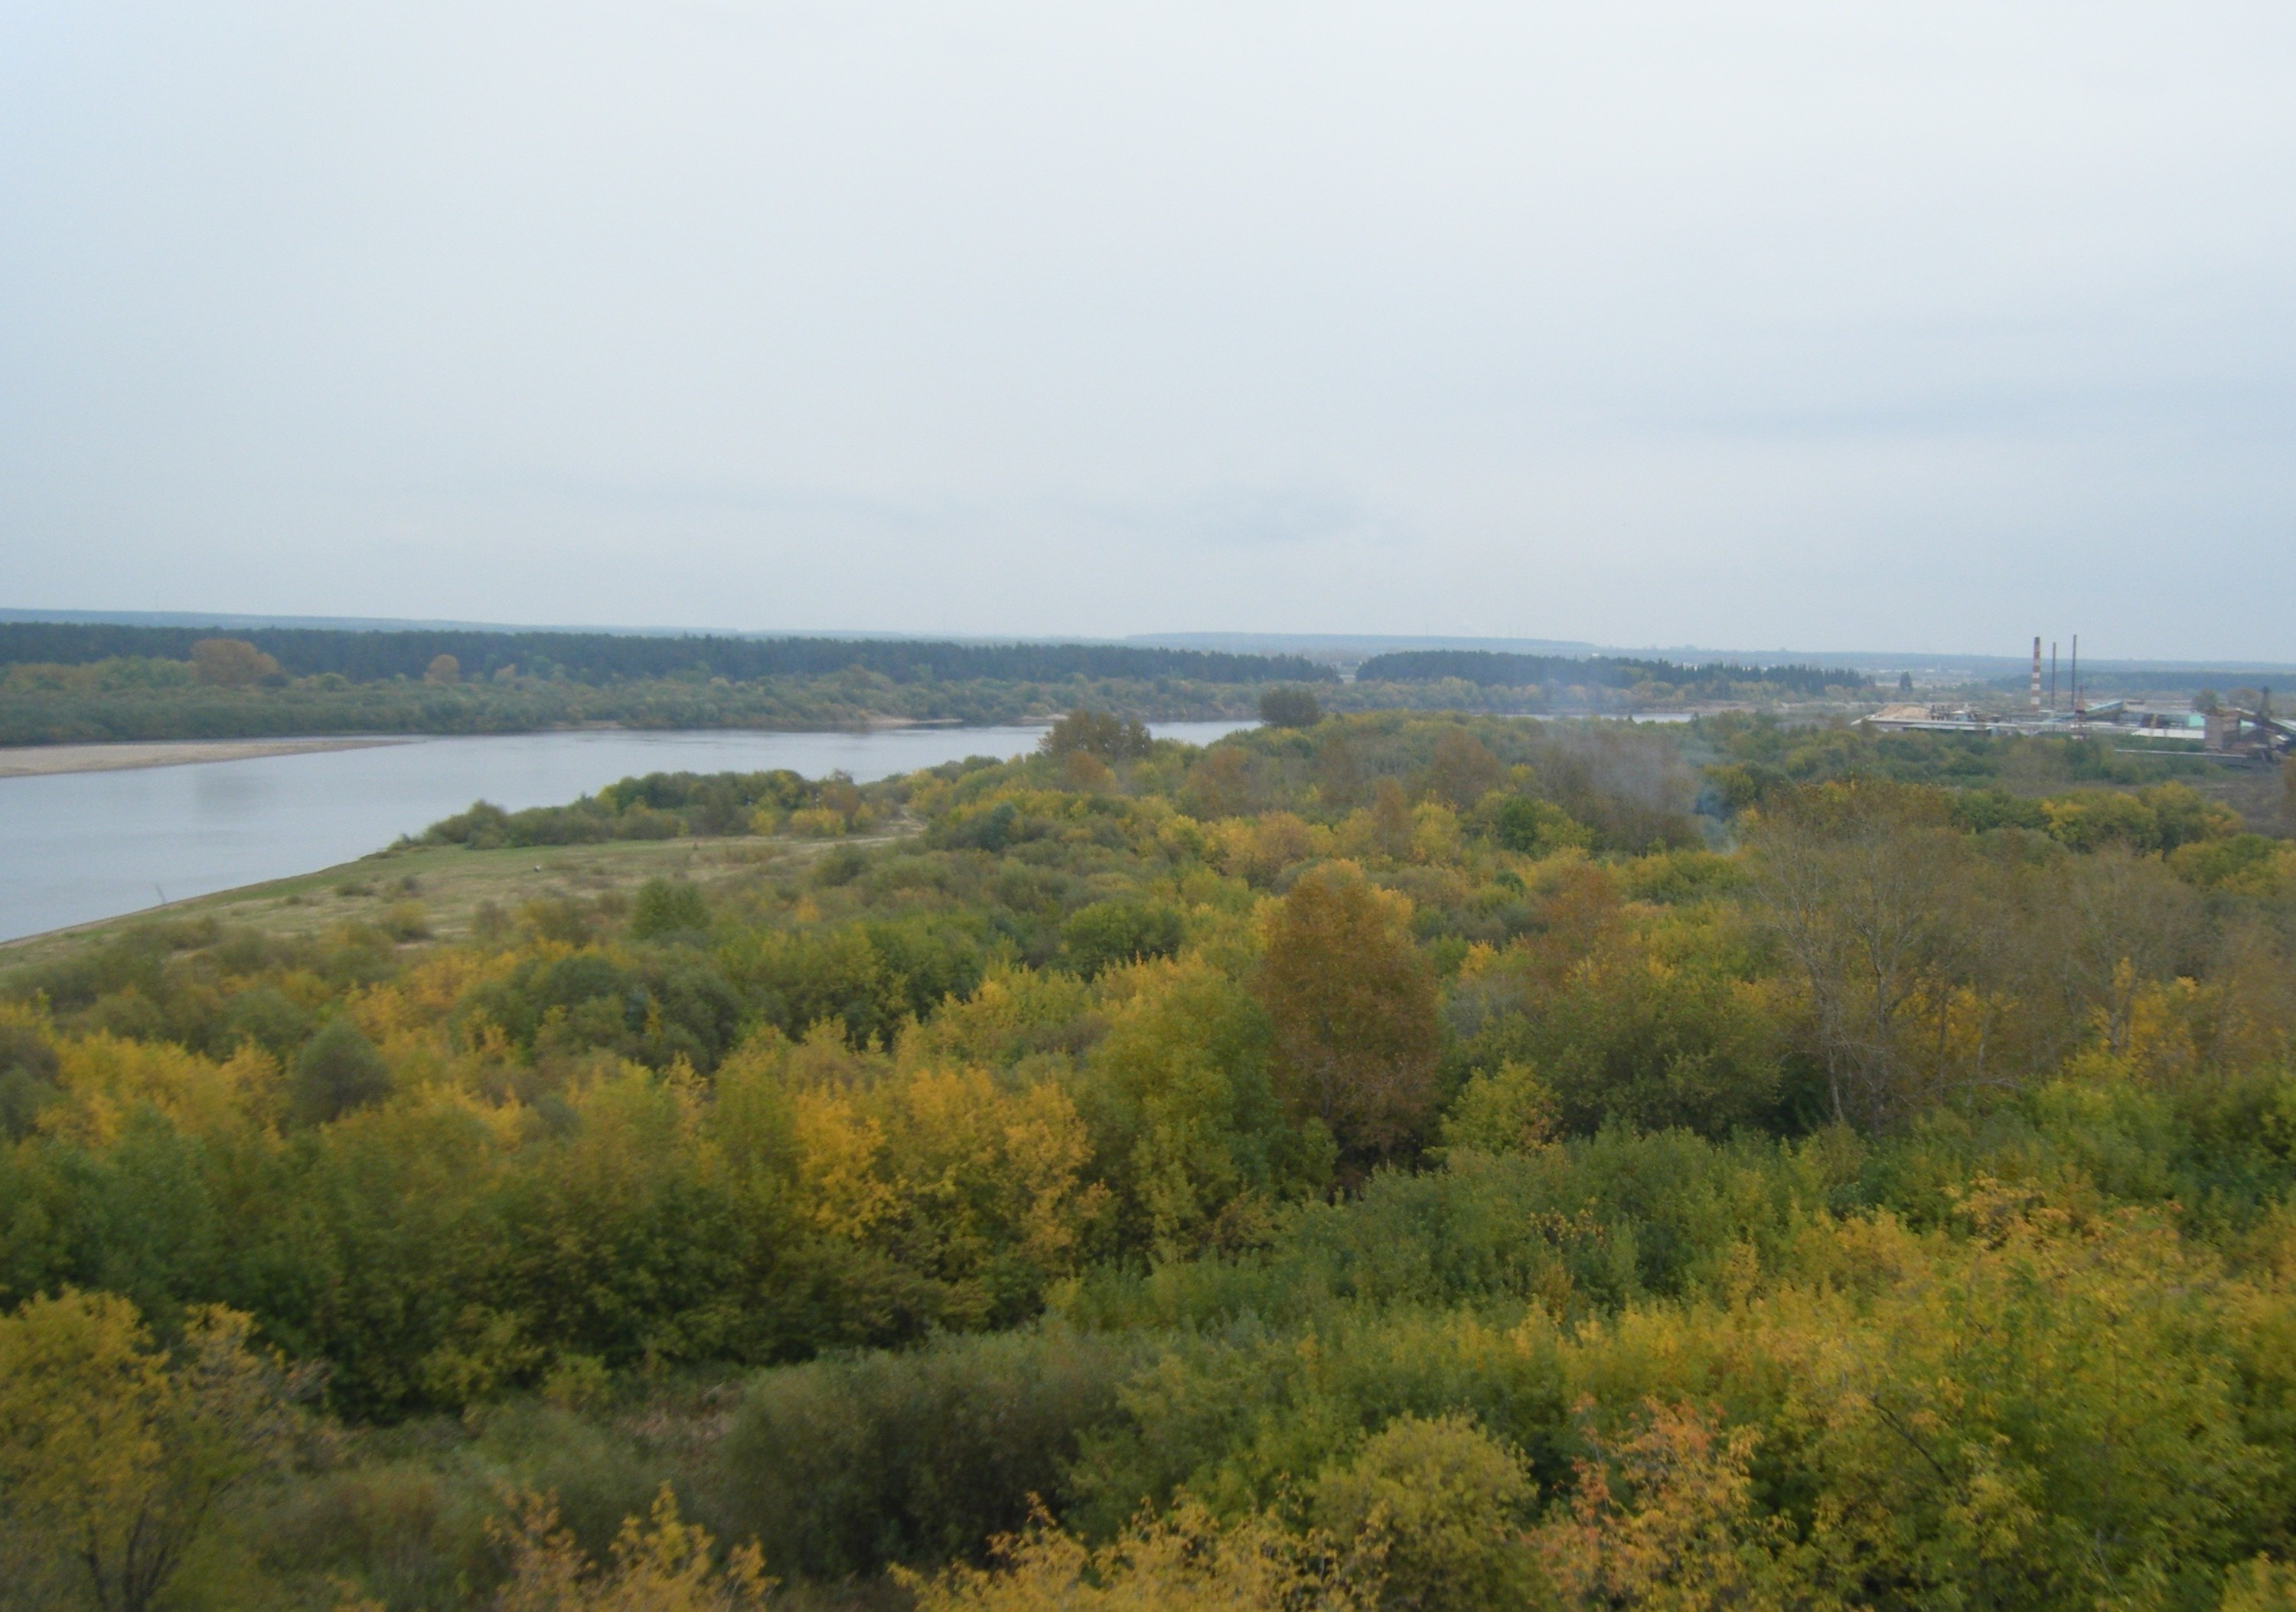 View of the Vyatka River.